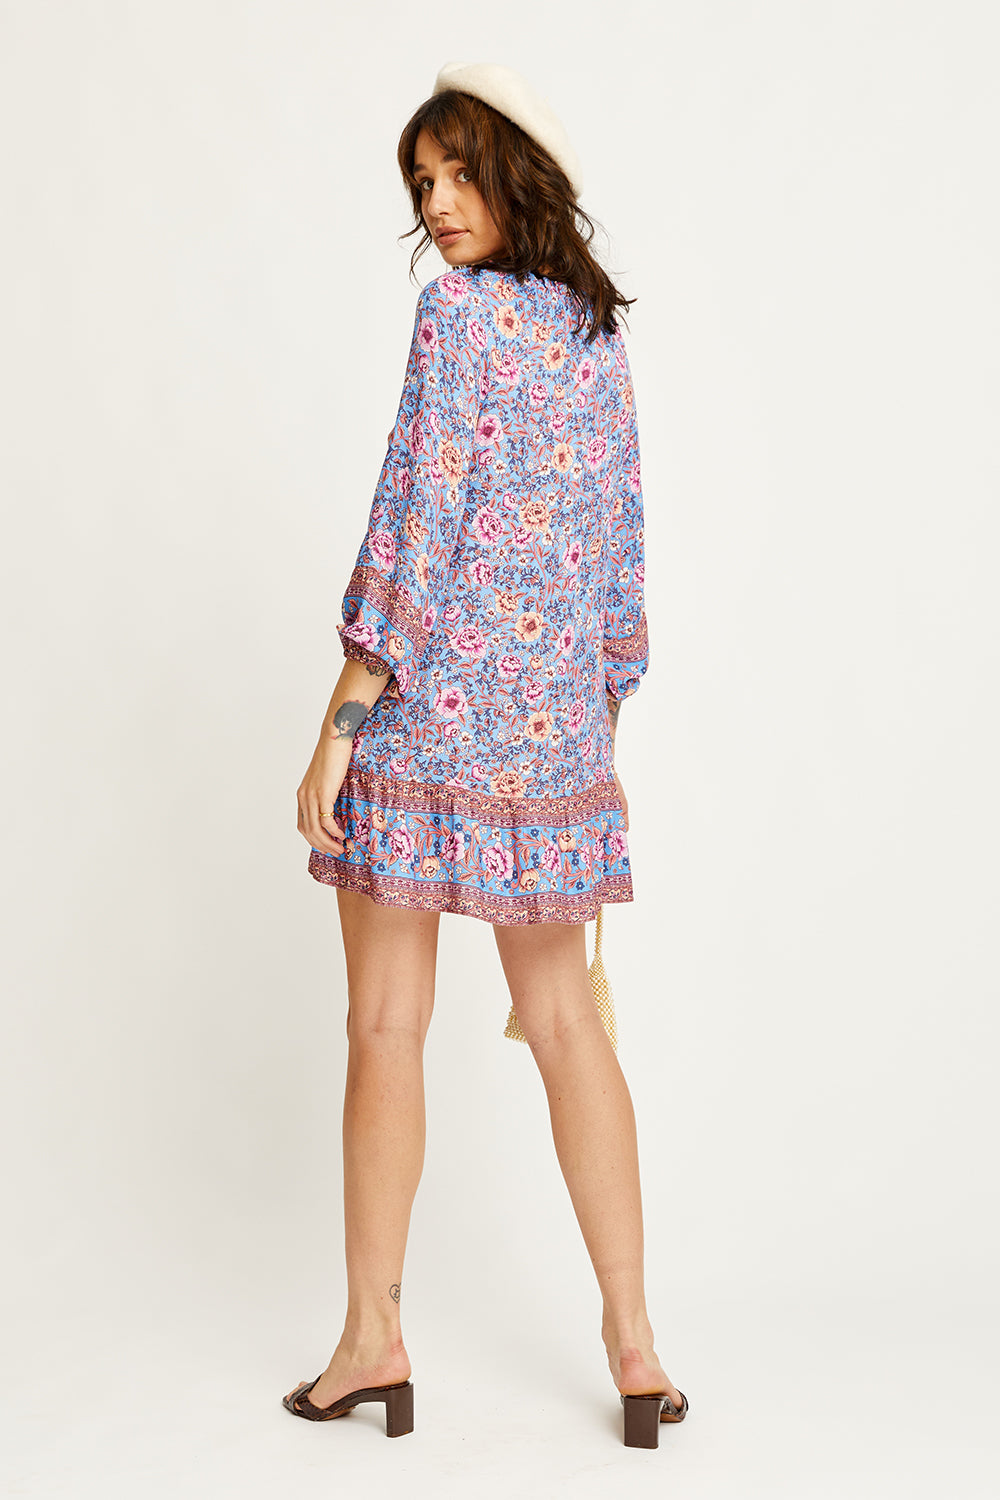 Juliette Tunic Dress in Bluebelle